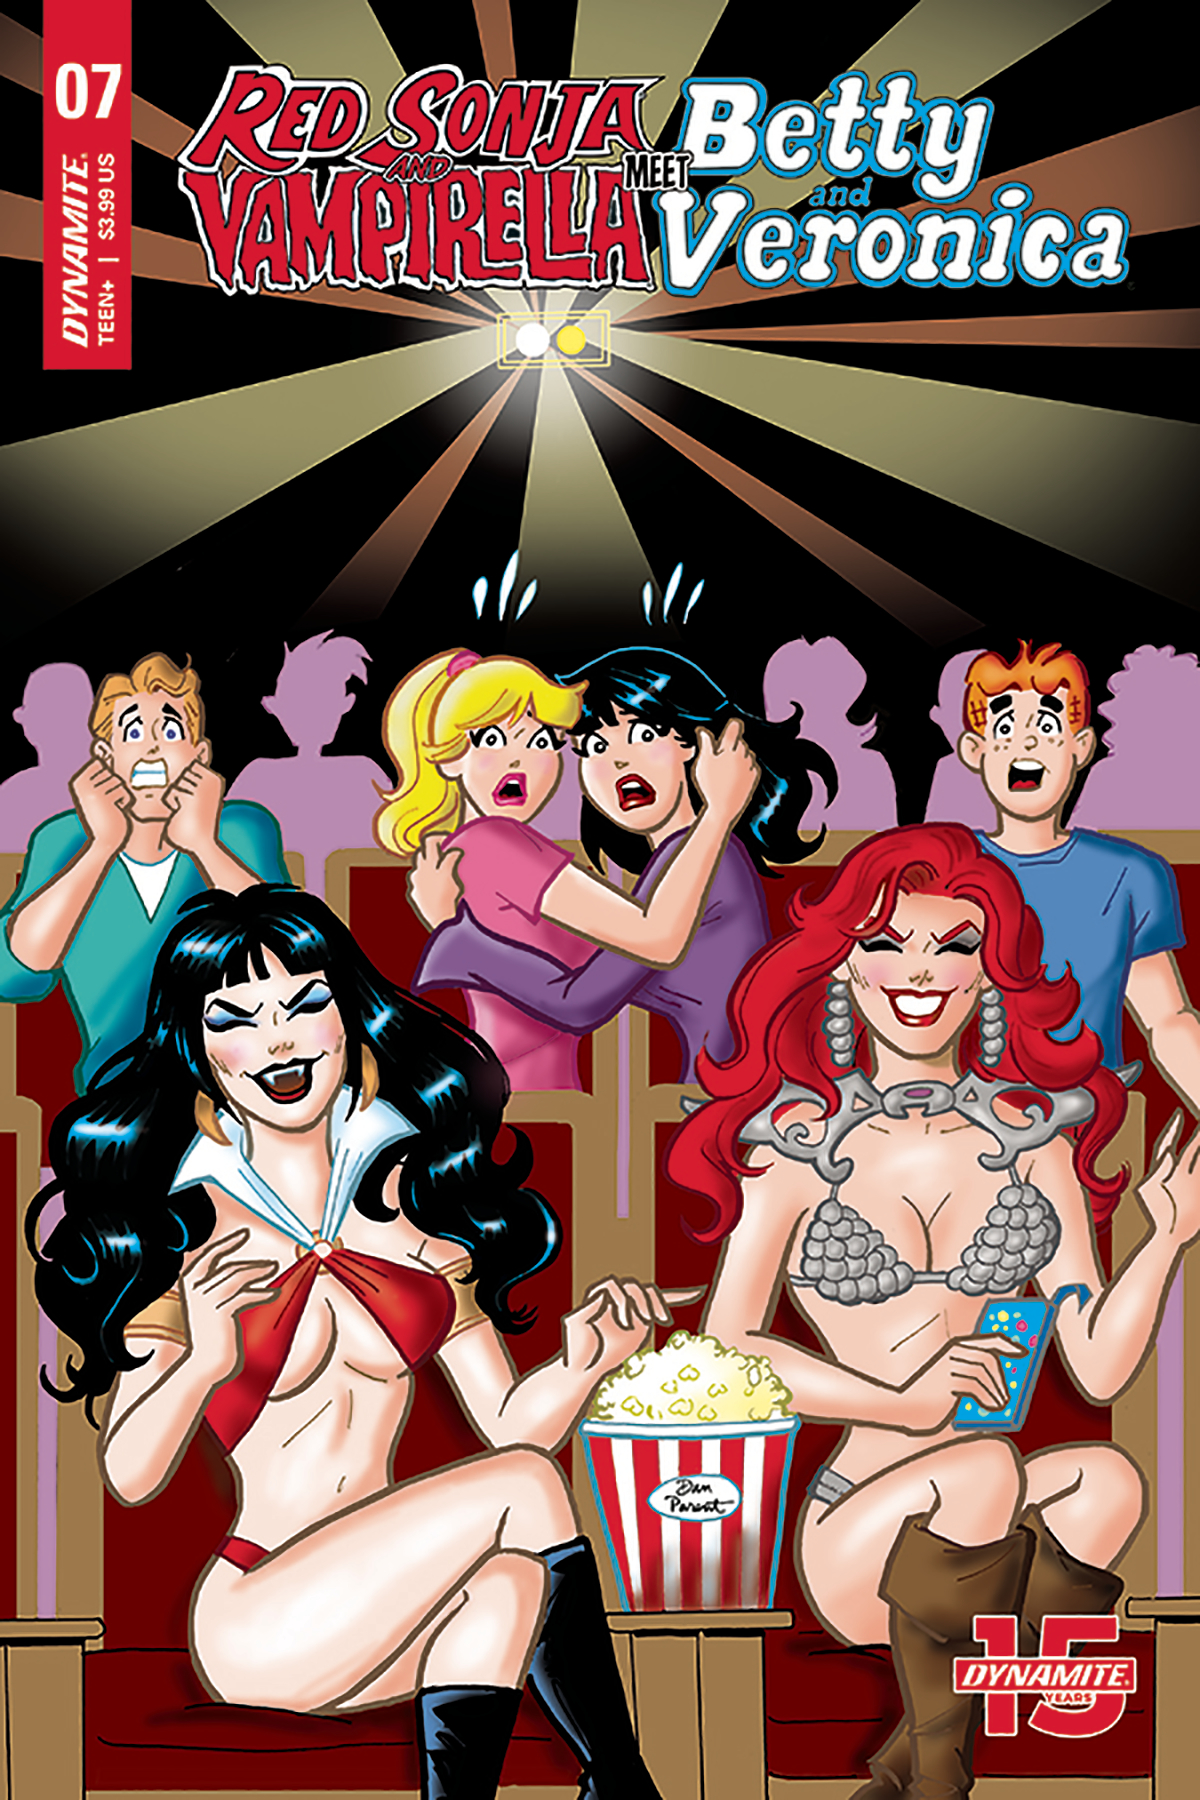 RED SONJA VAMPIRELLA BETTY VERONICA #7 CVR D PARENT